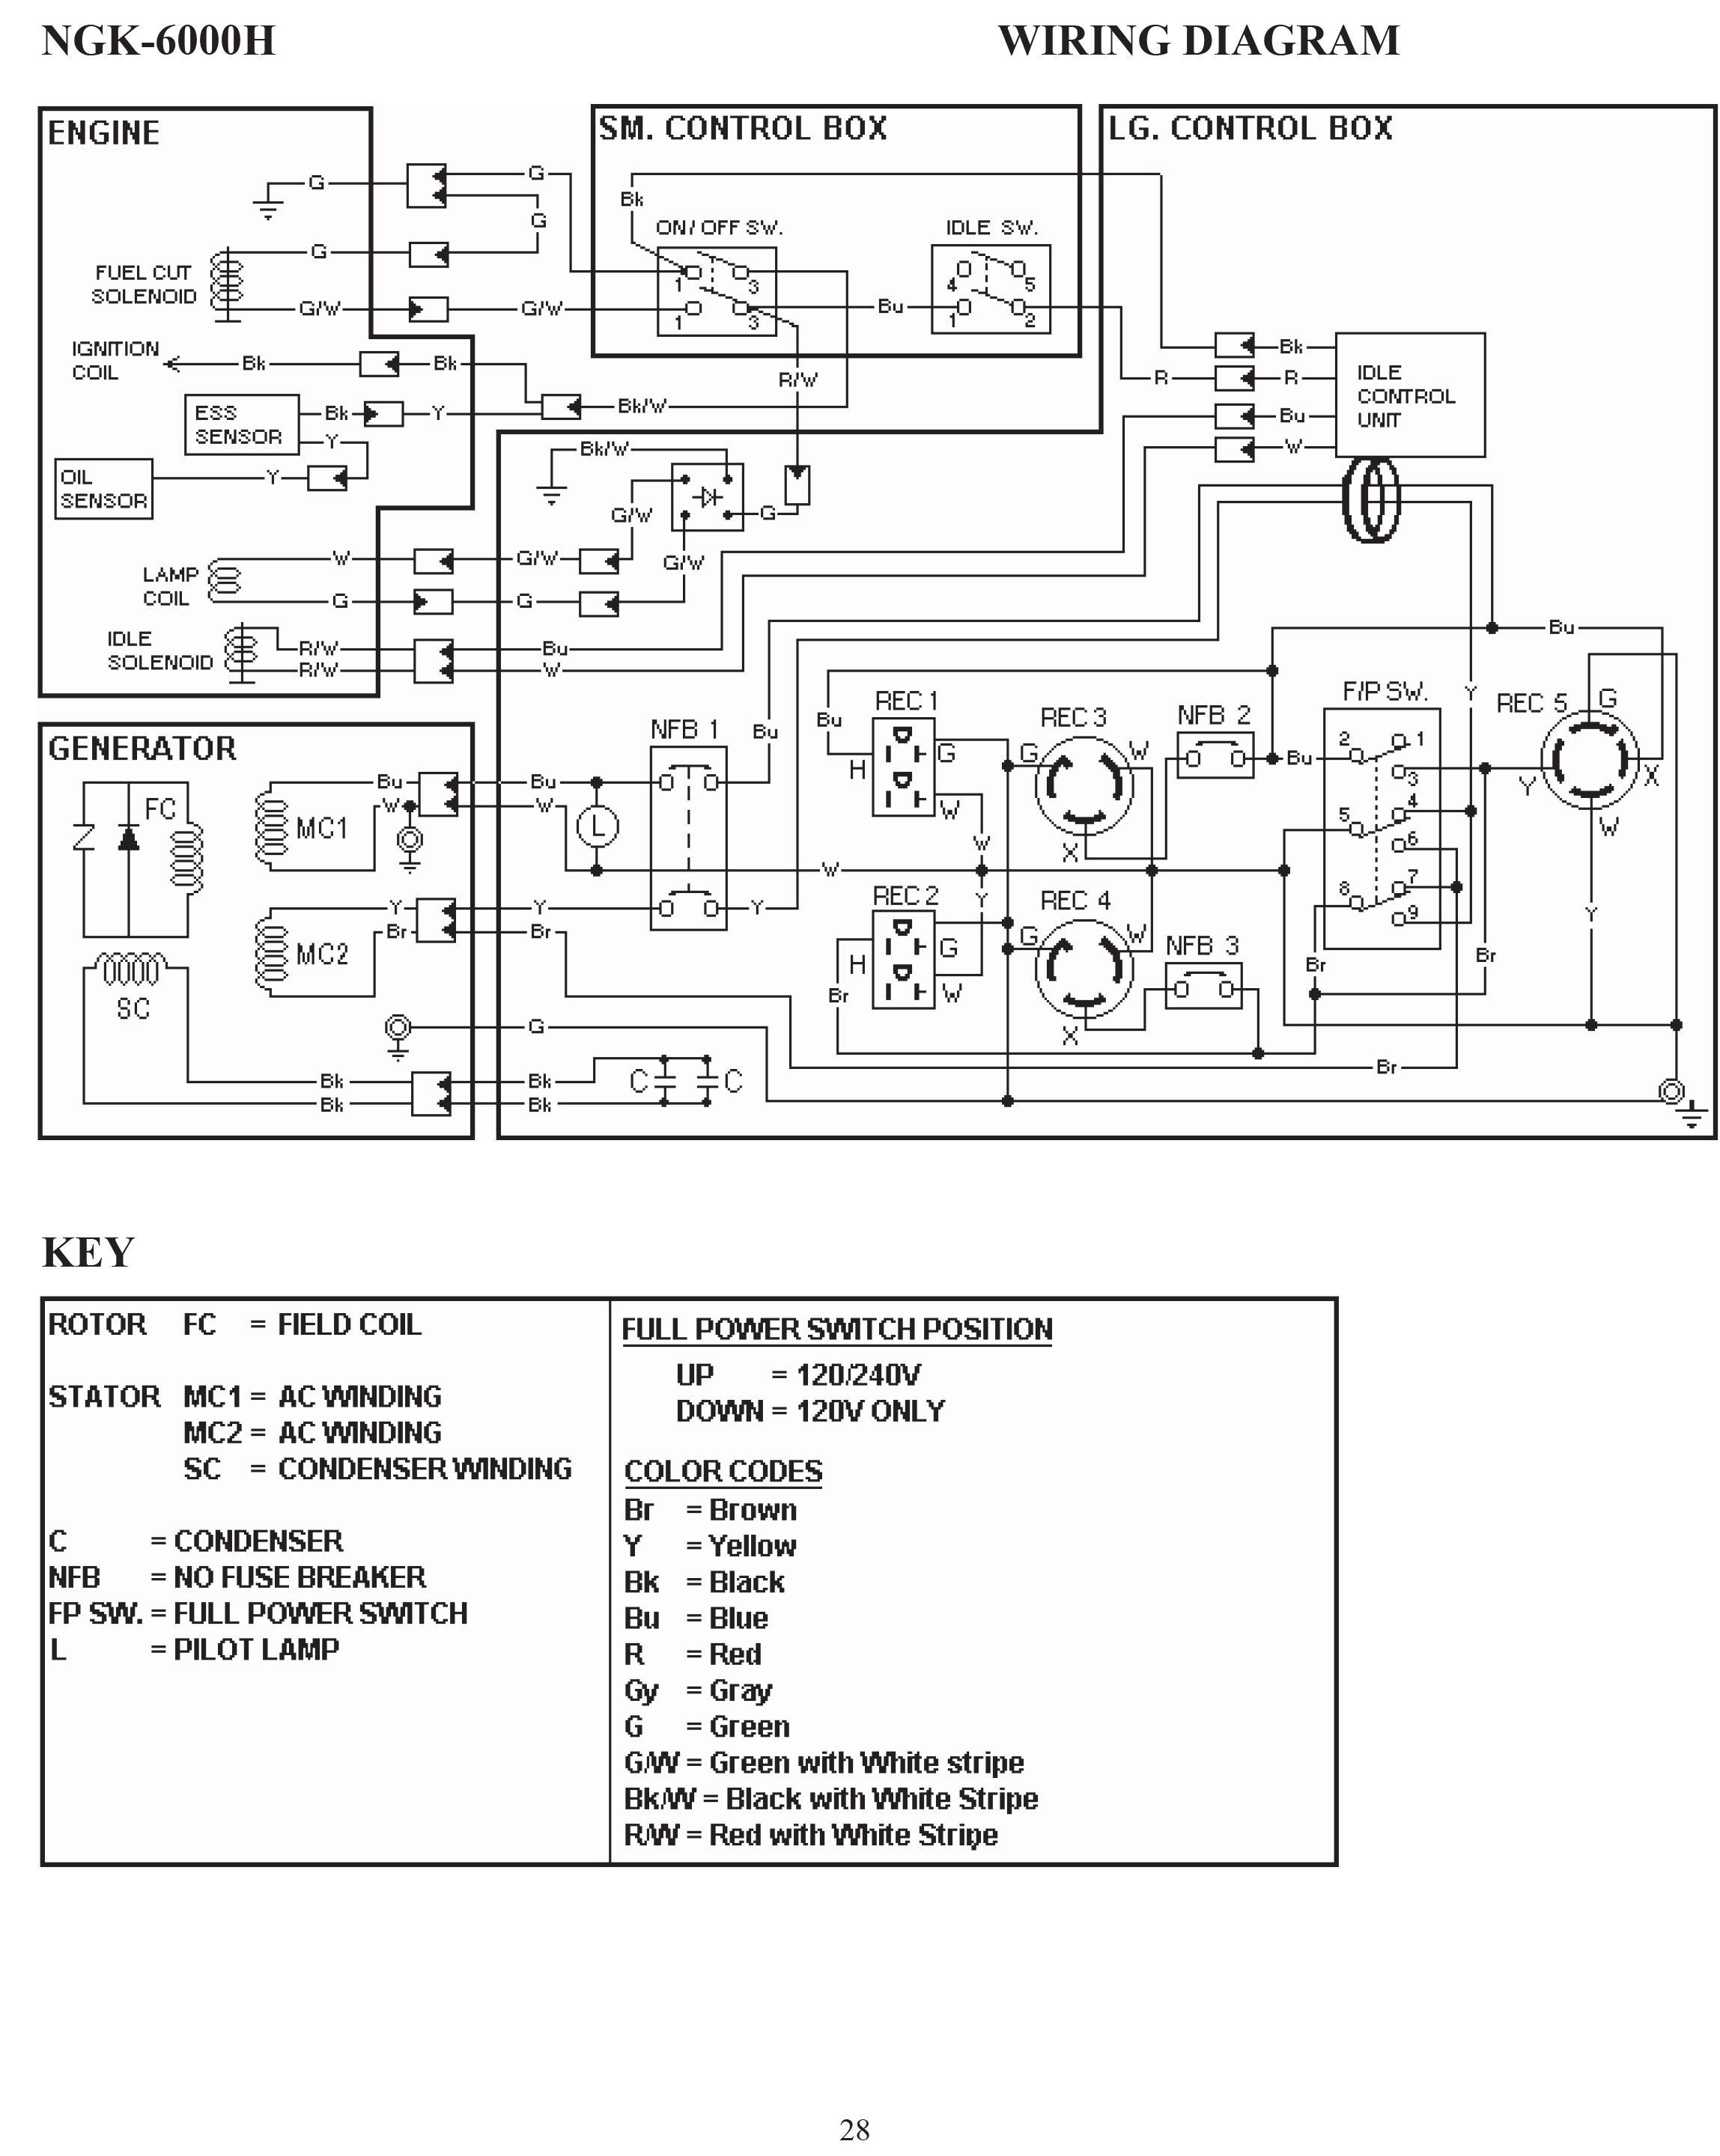 wiring diagram winnebago the wiring diagram southwind motorhome wiring diagram vidim wiring diagram wiring diagram